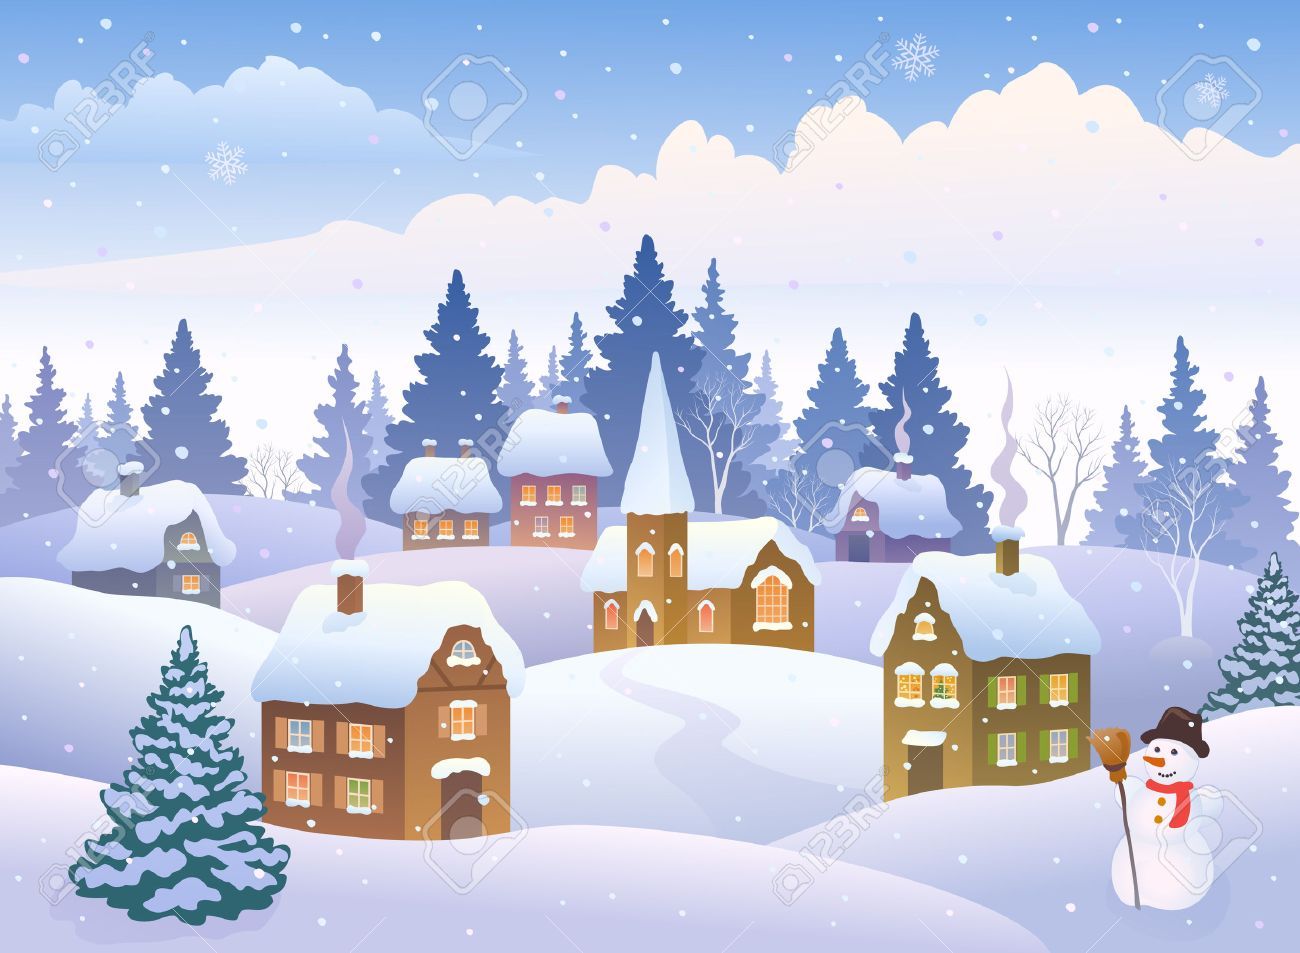 Vector Illustration Of A Winter Landscape With A Small Snowy Town